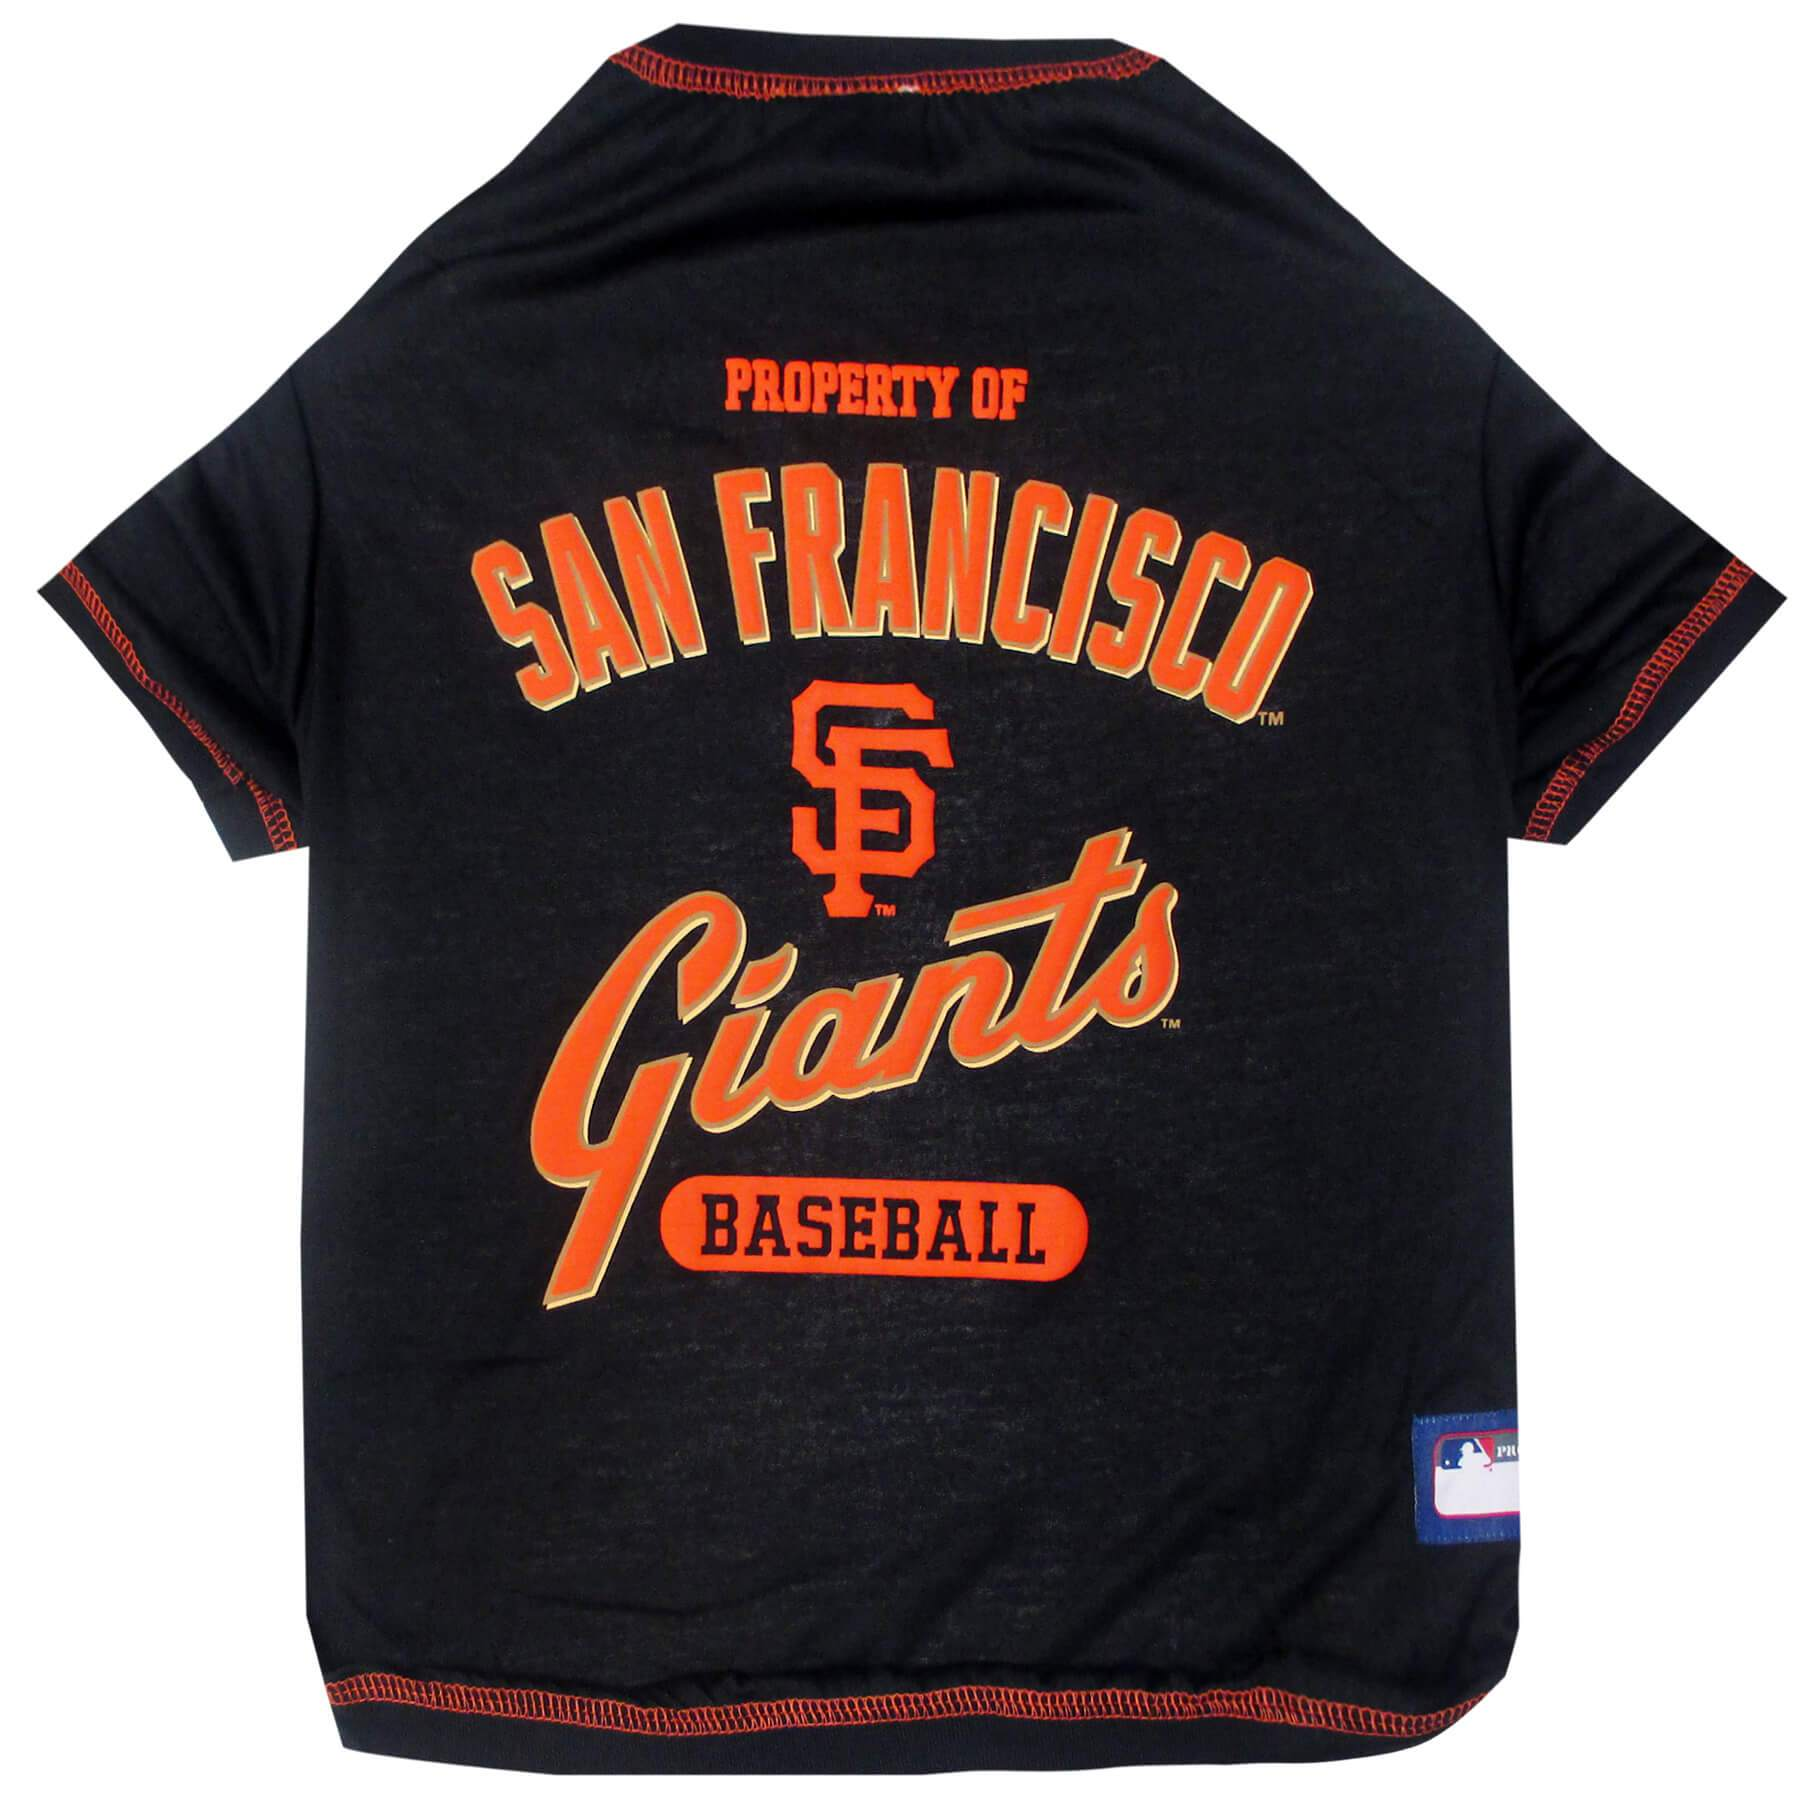 San Francisco Giants Dog Shirt